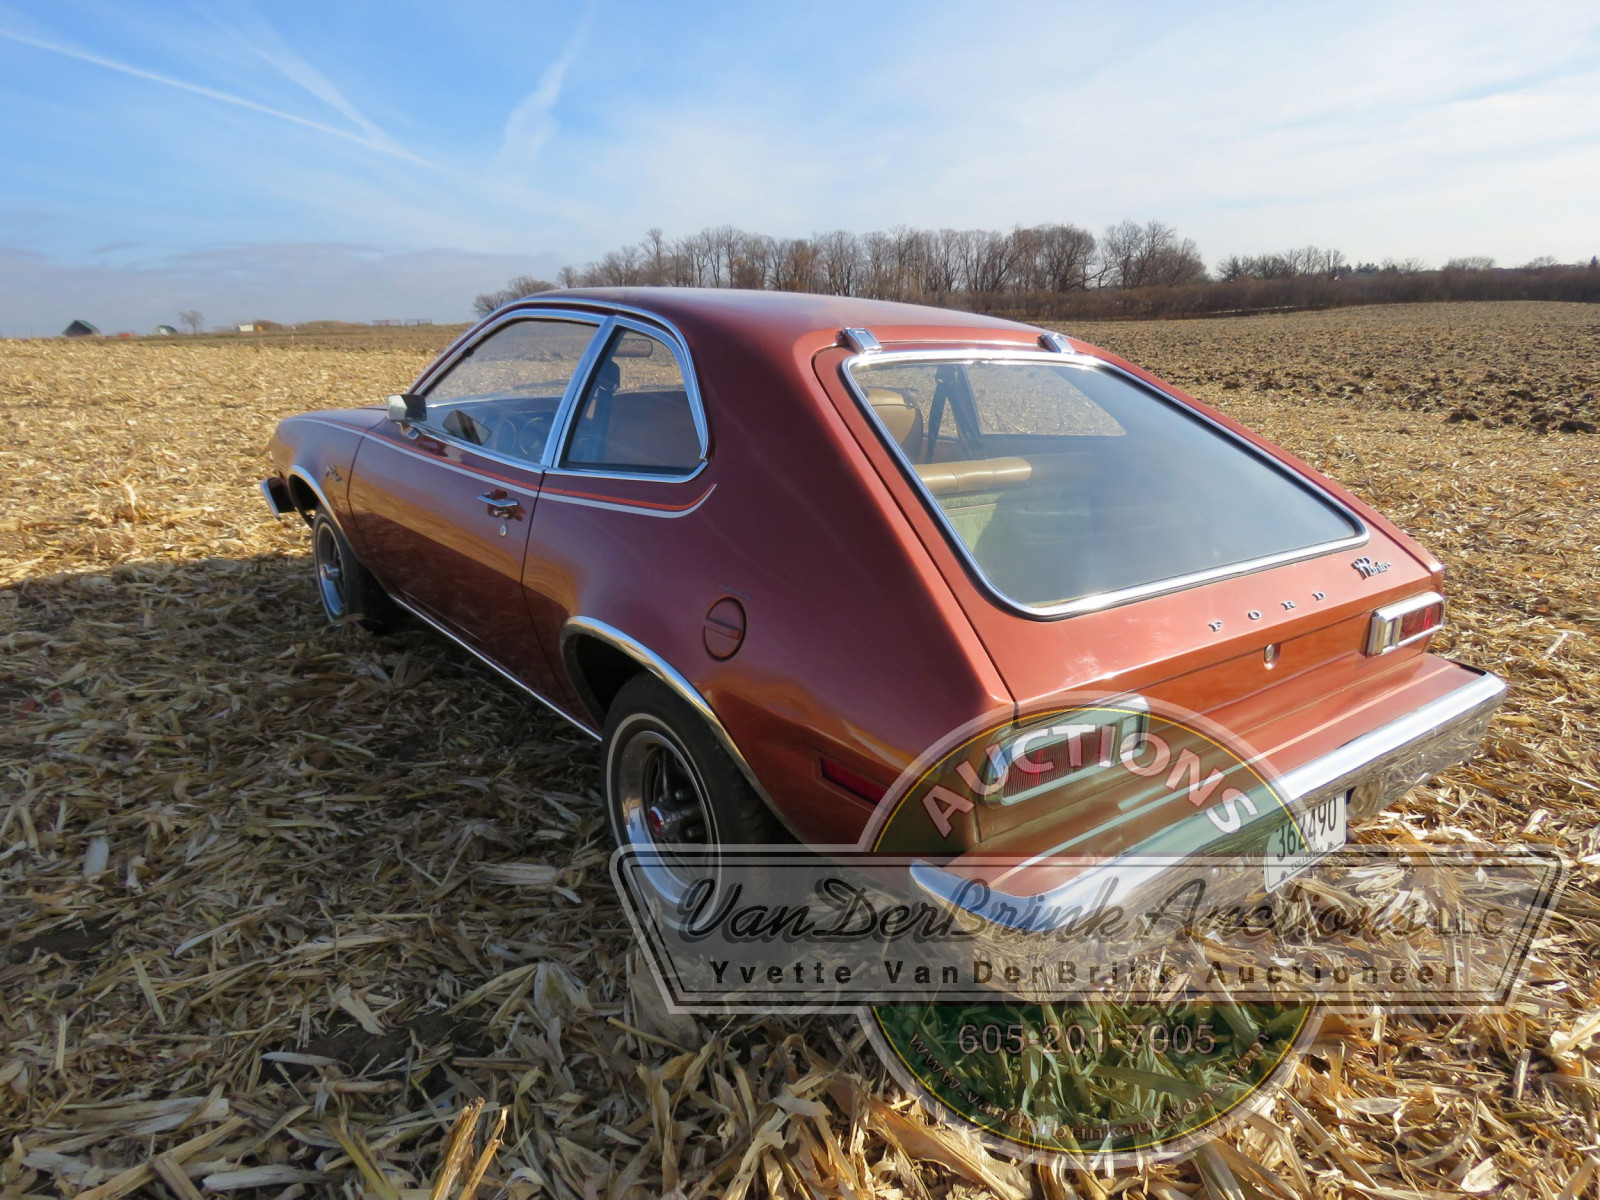 1976 Ford Pinto - Image 7